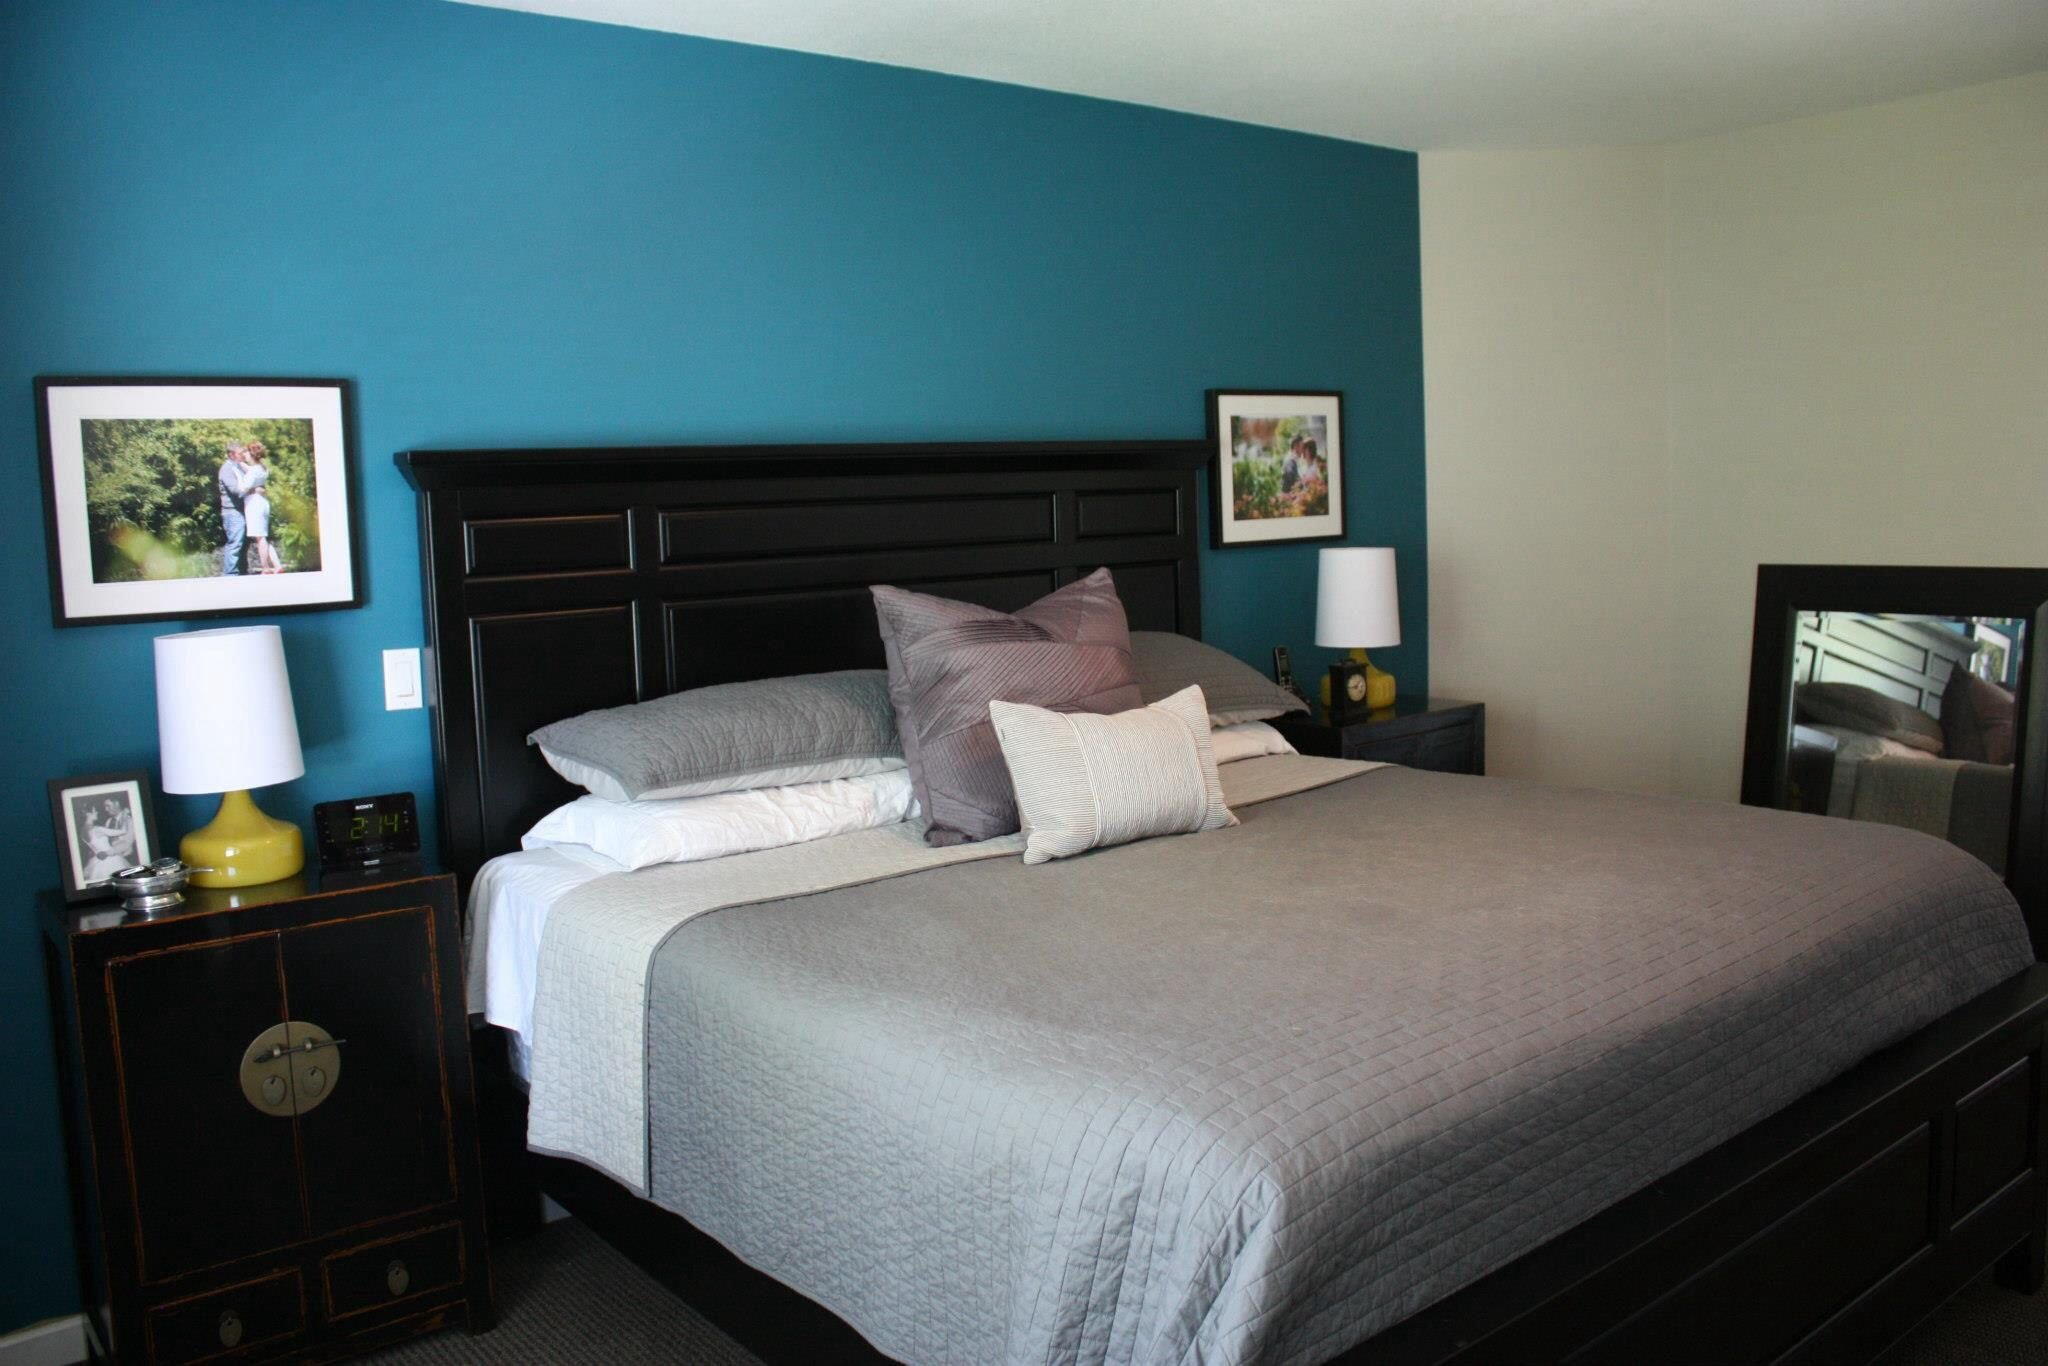 Teal and Black Bedroom Ideas Awesome Our Master Bedroom Black Furniture Custom asian Side